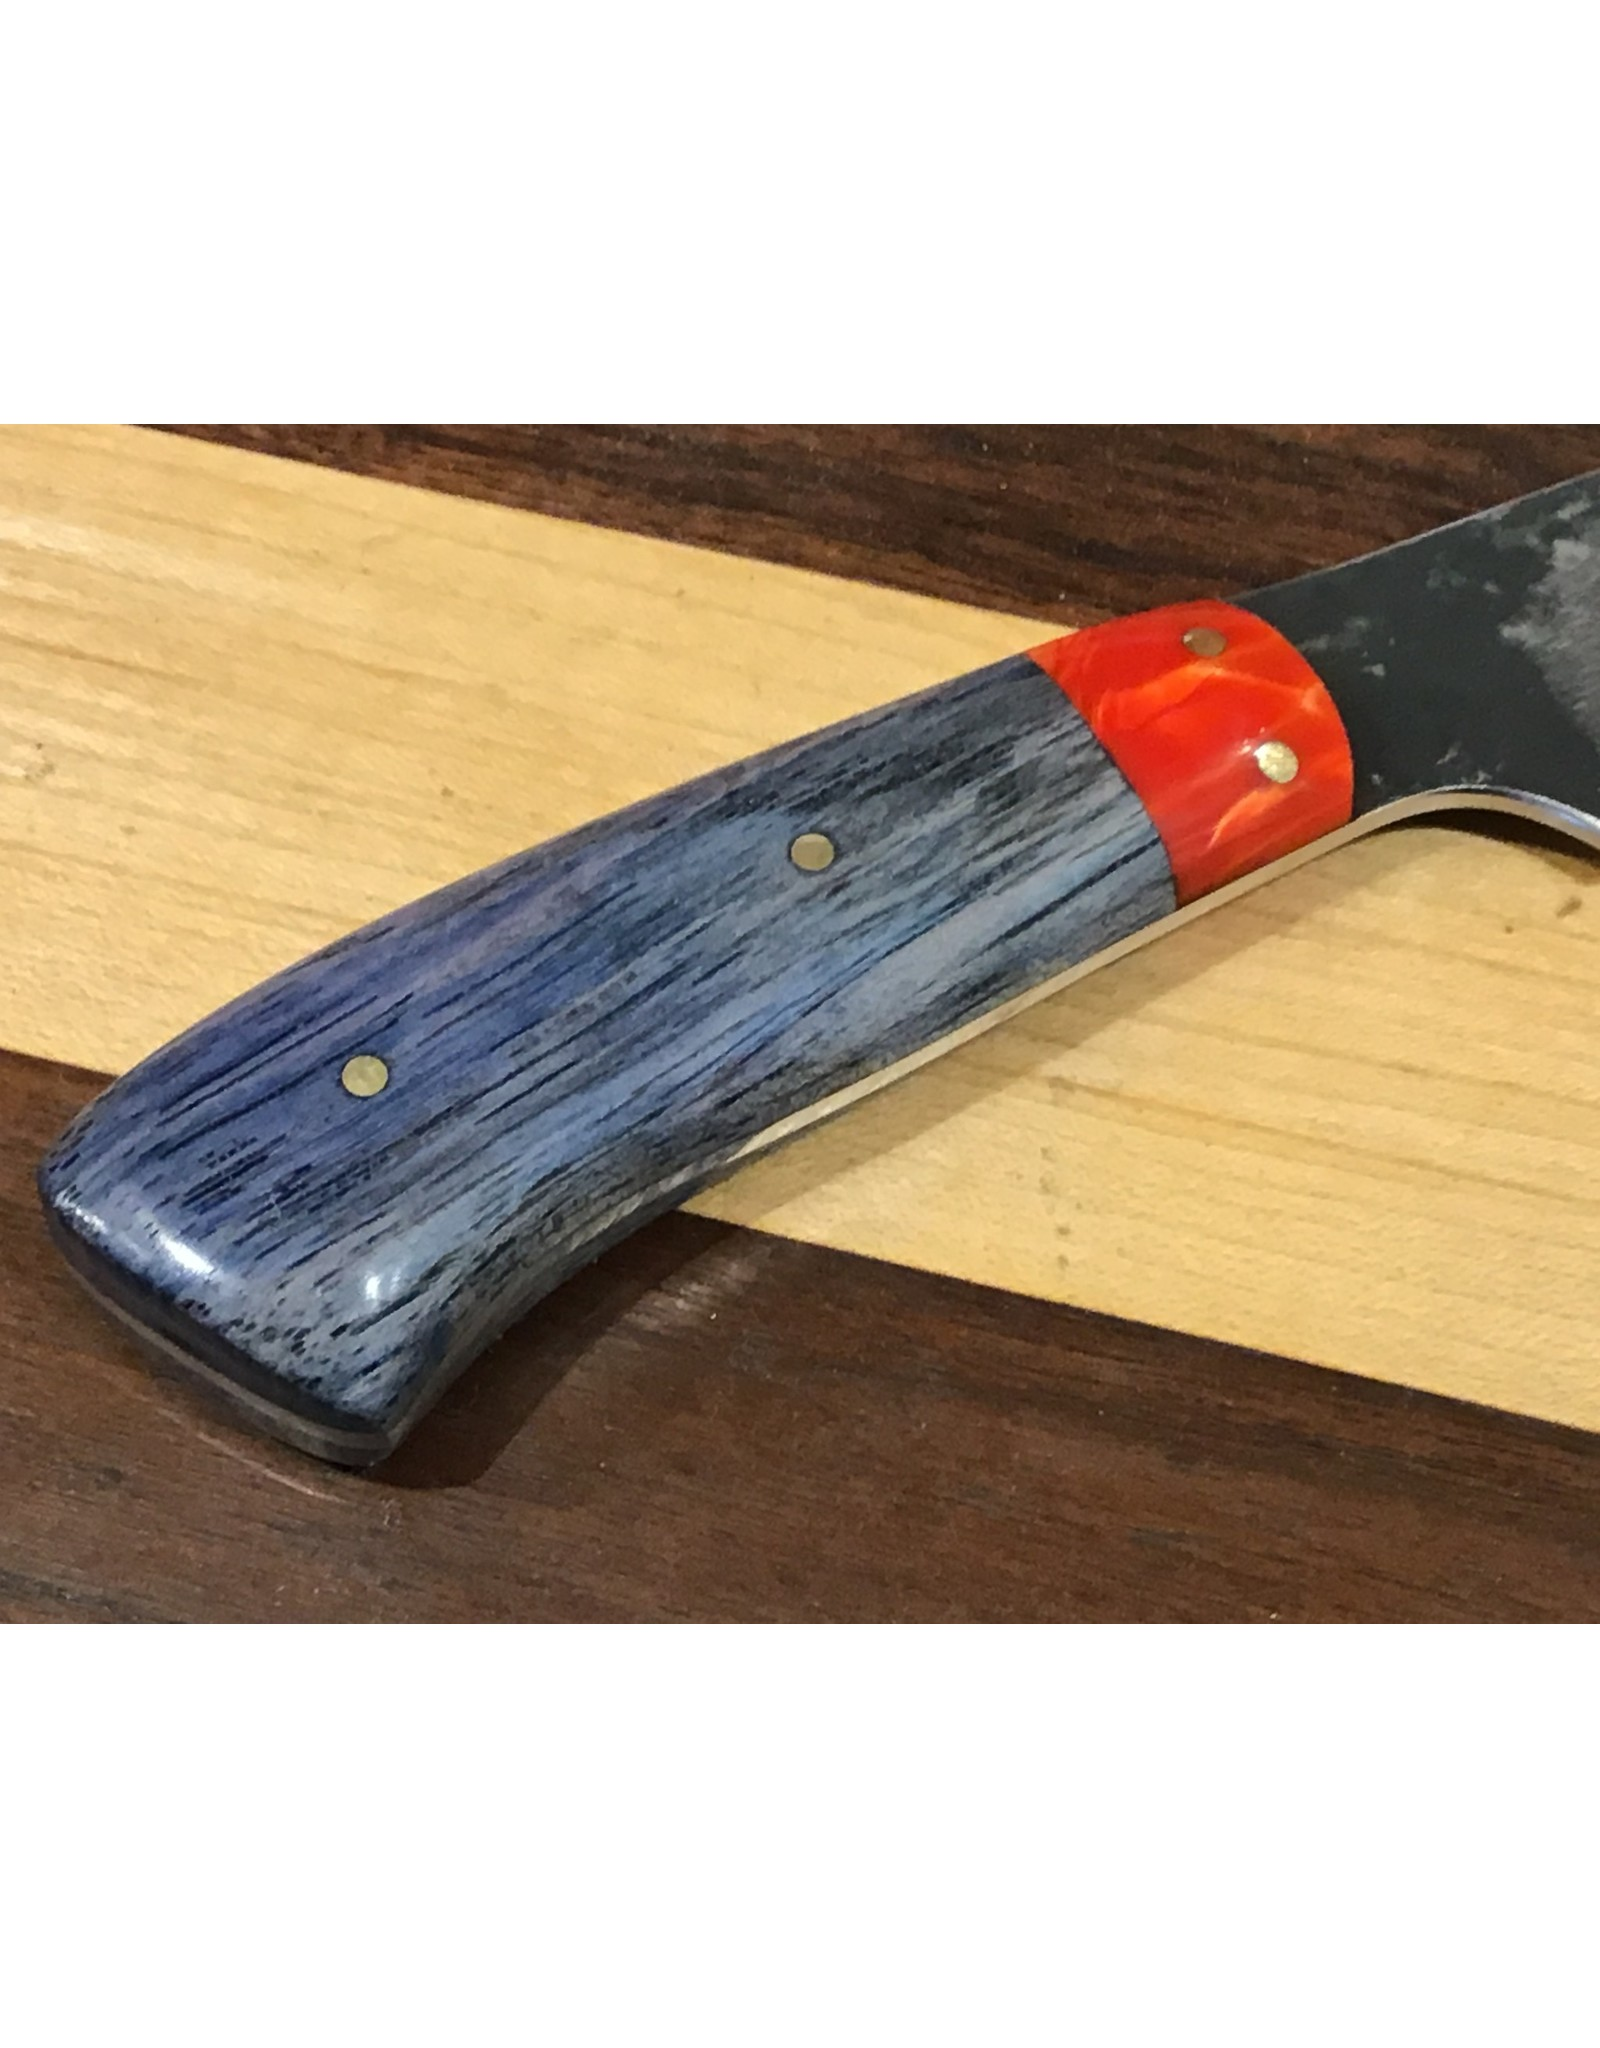 Serenity Boning Knife in CPM154 w/ a Juma and Blue Pecan handle